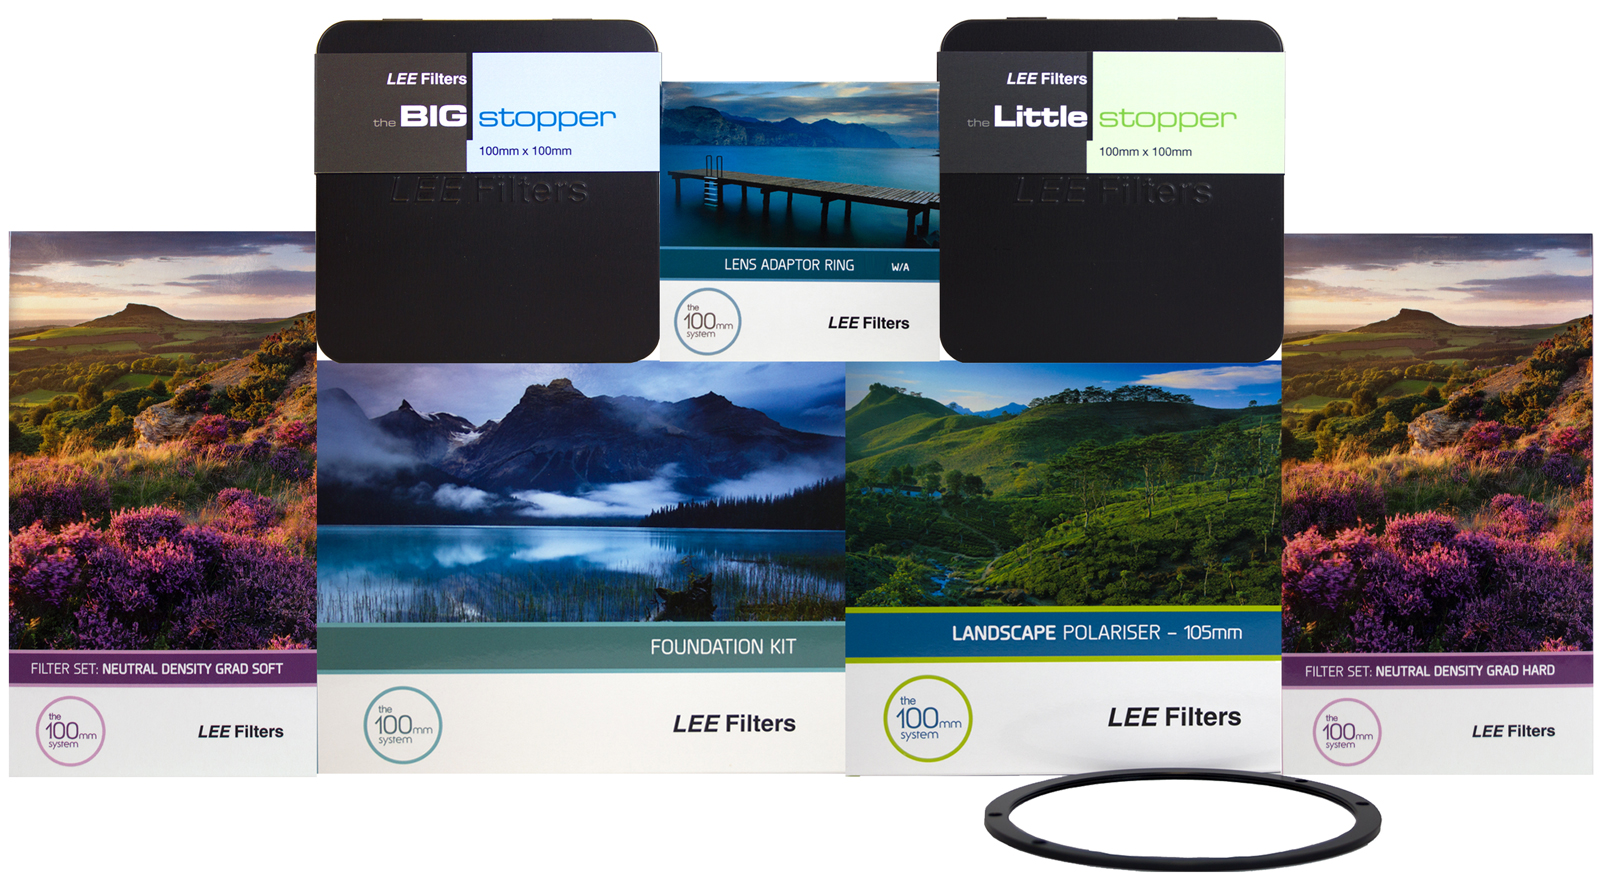 Lee Filters 100mm Filter Kits 100x150 Graduated Nd Soft Set New Ultimate Kit